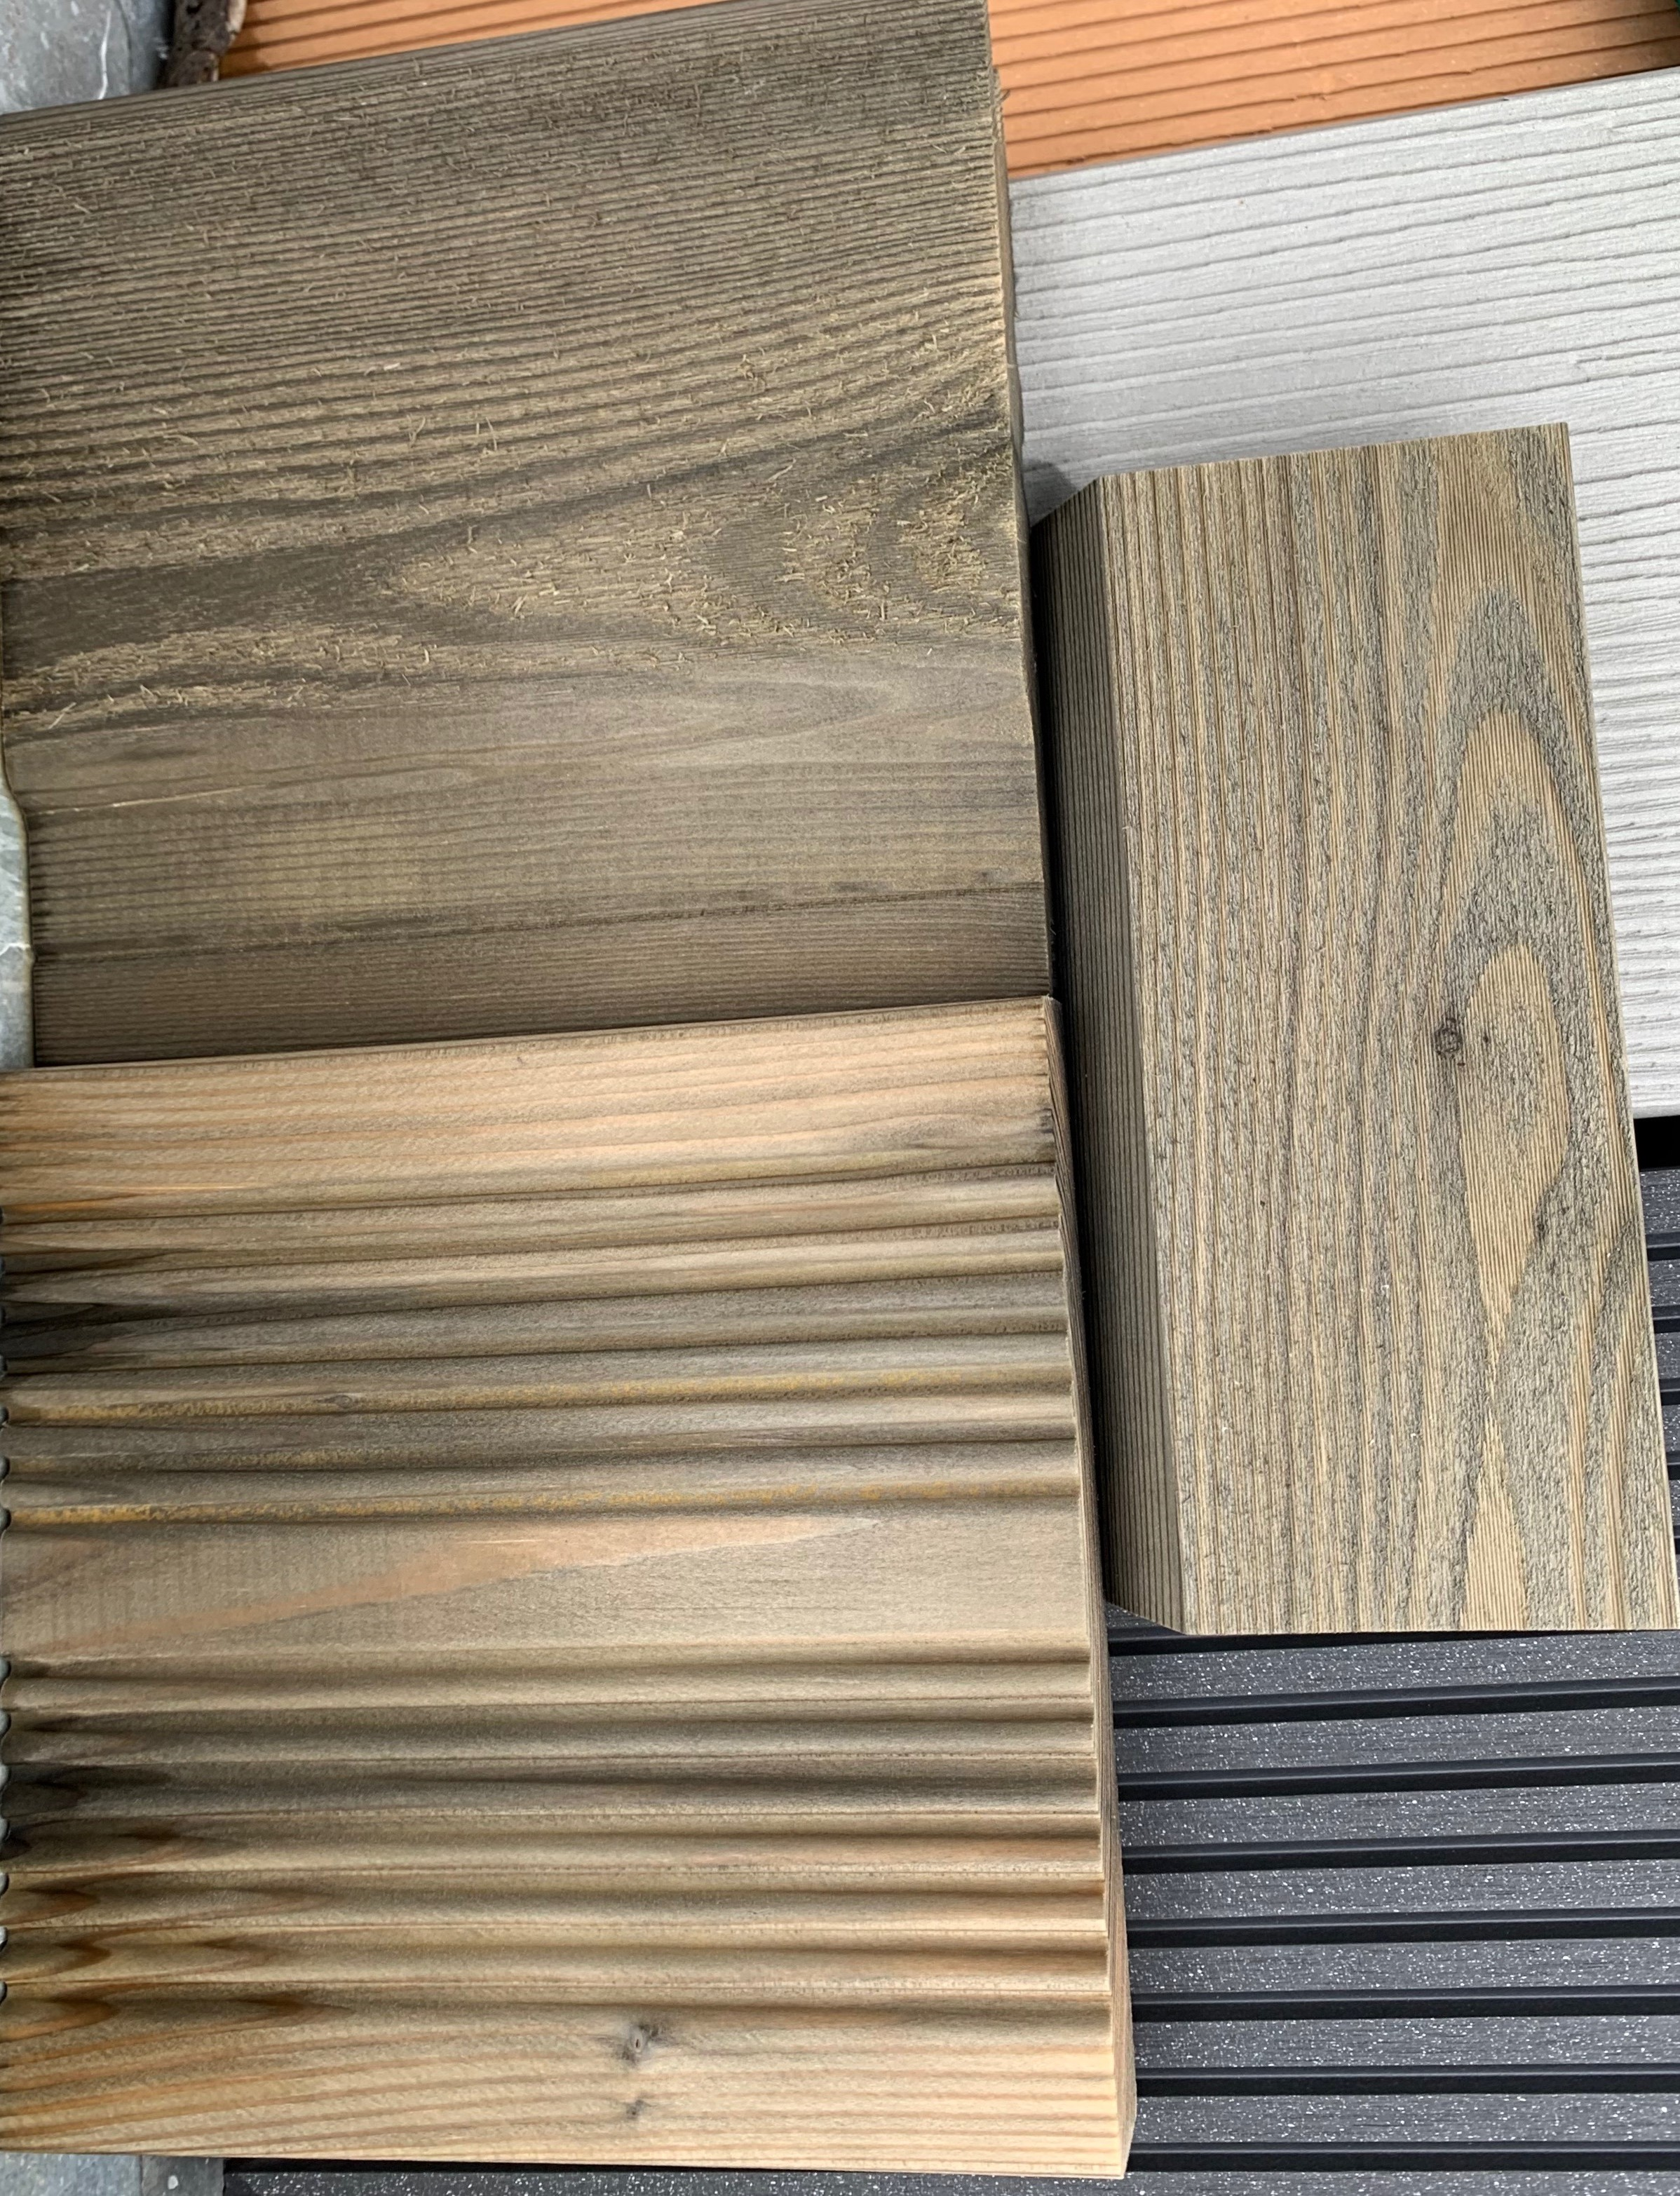 Siberian Larch Samples Treated SertiWOOD Aged Look After 7 Days Exposure